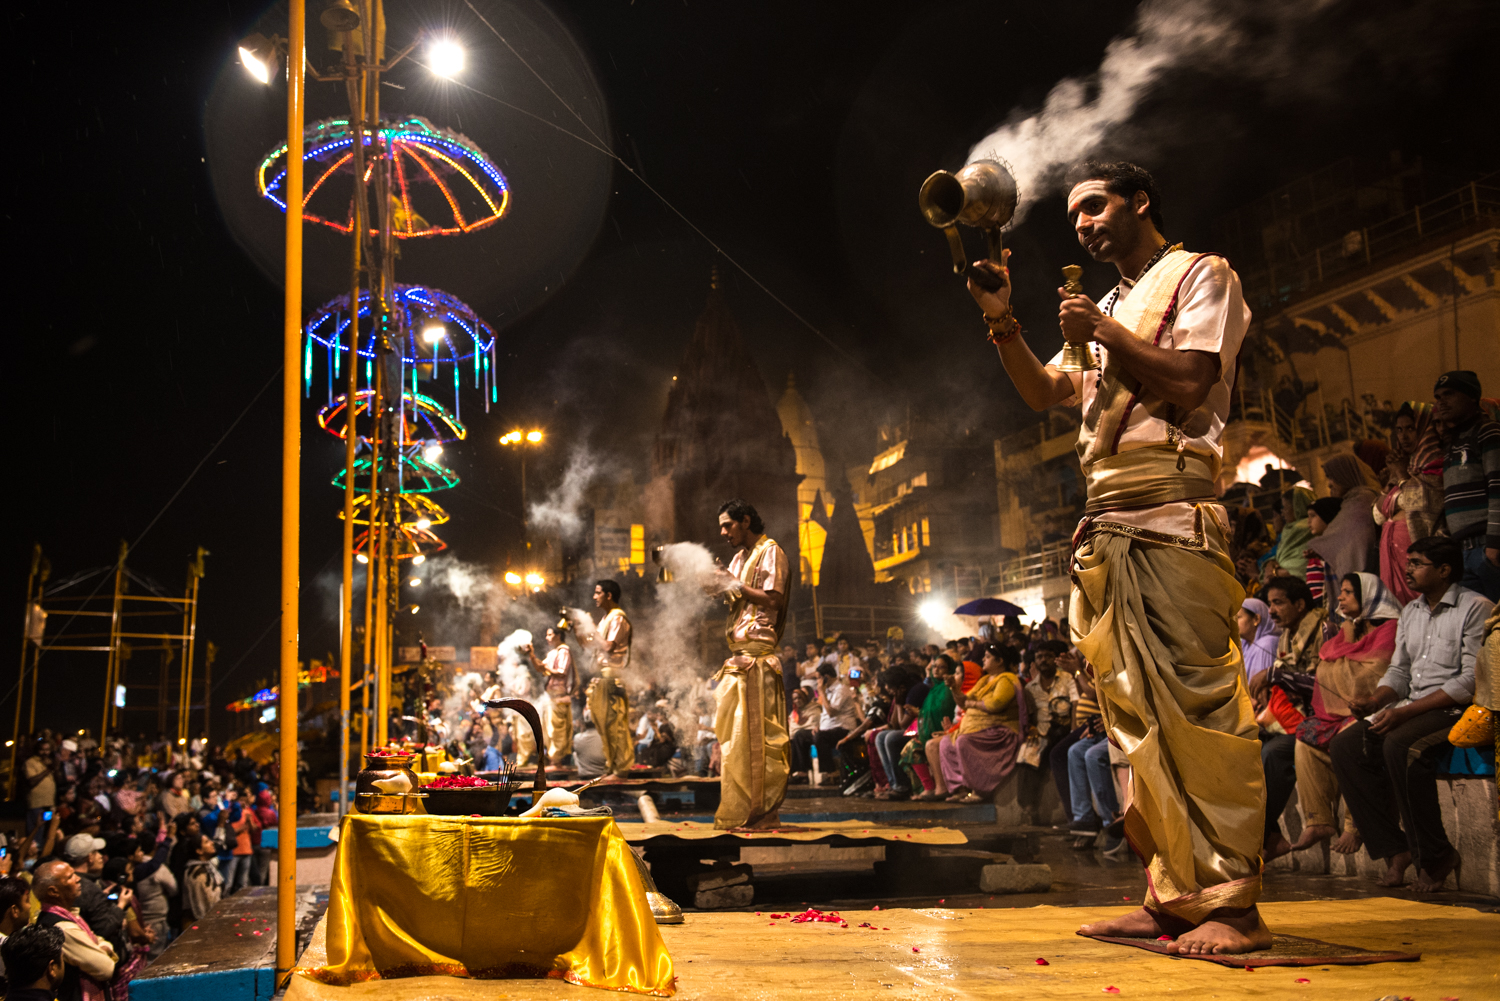 Ganges Aarti is a devotional ritual that uses fire as an offering. Men dance with lamps that are lit up, accompanied with songs that praise deities - Varanasi, India.